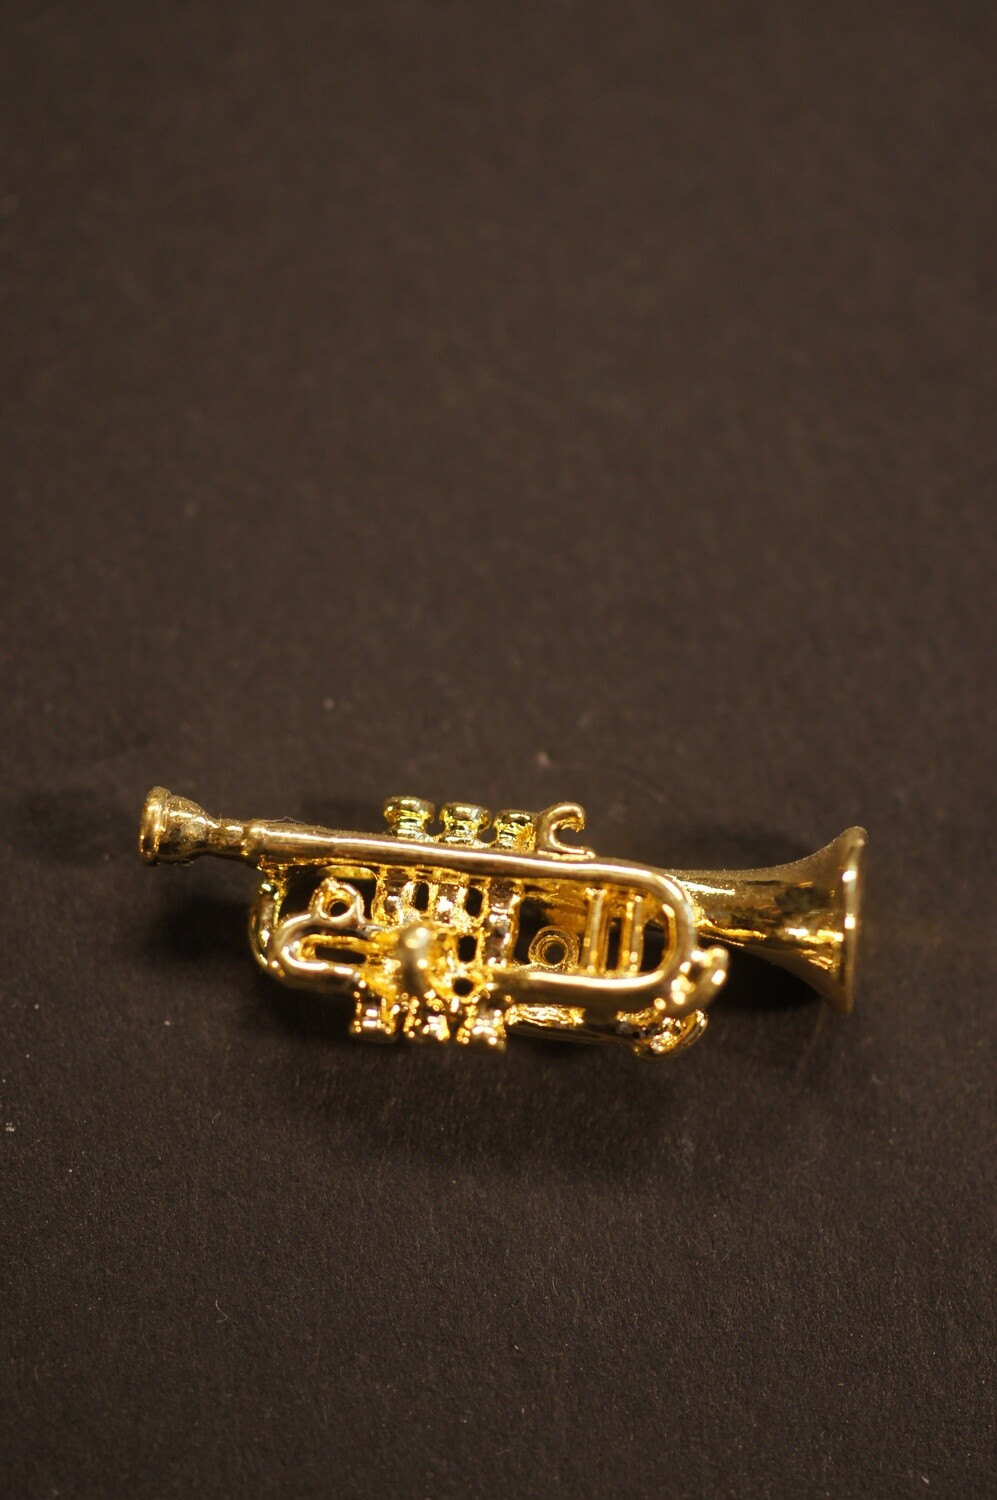 Pin's instrument